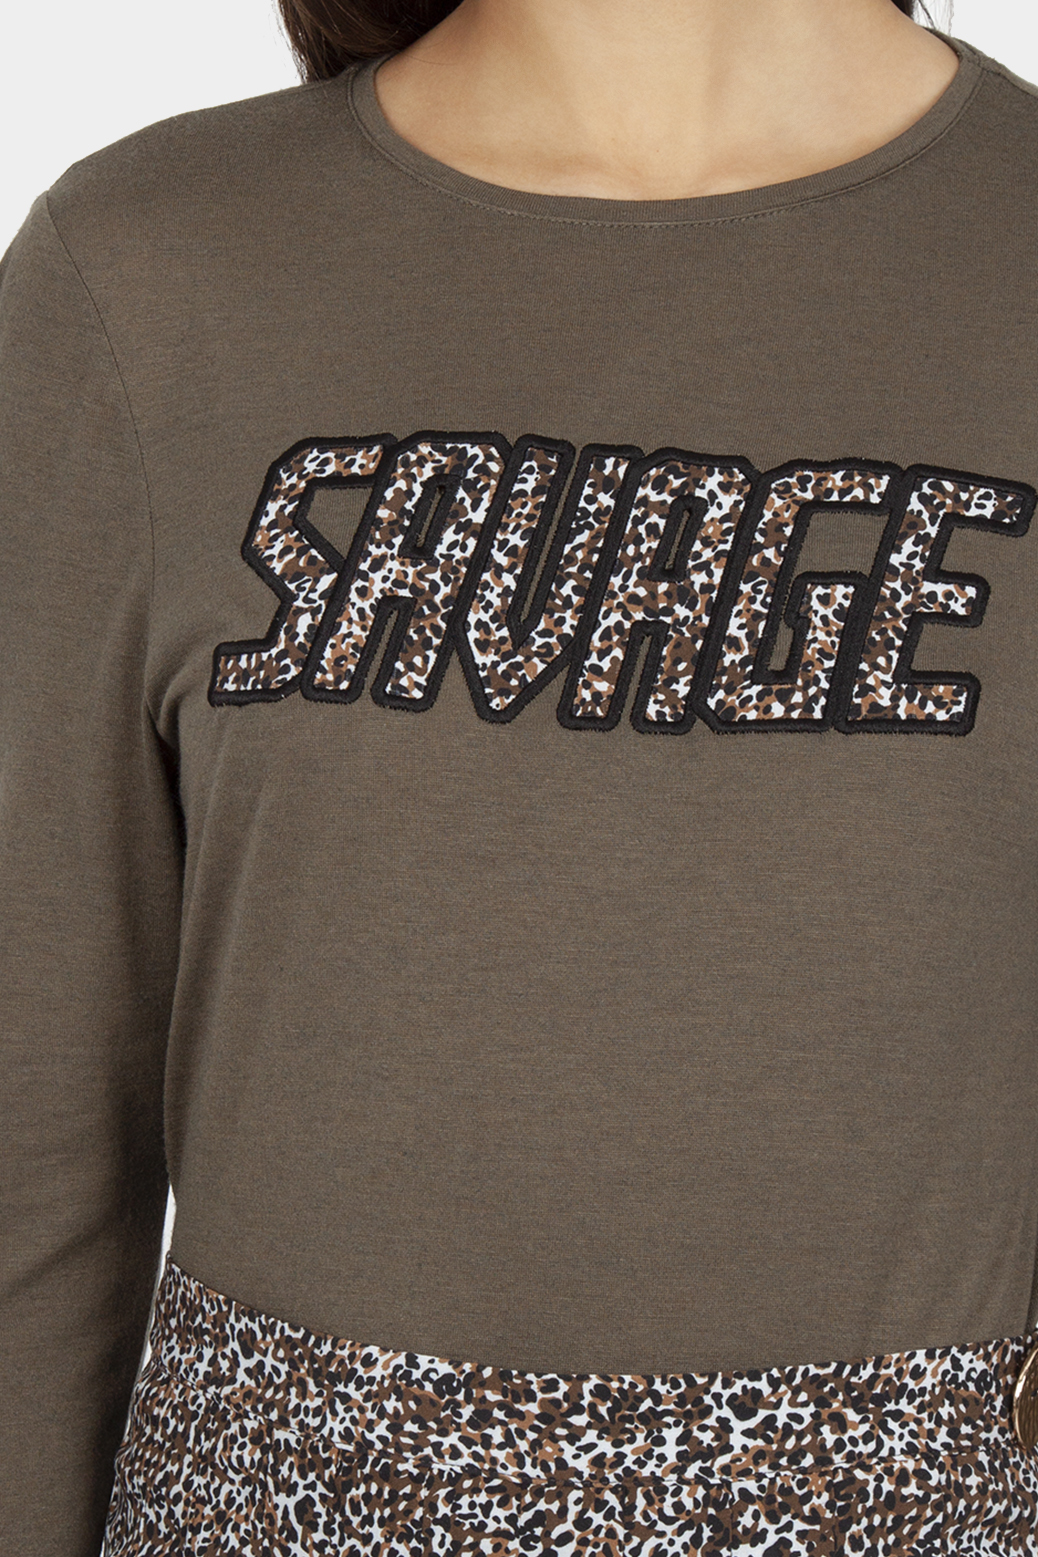 T shirt with embroidery